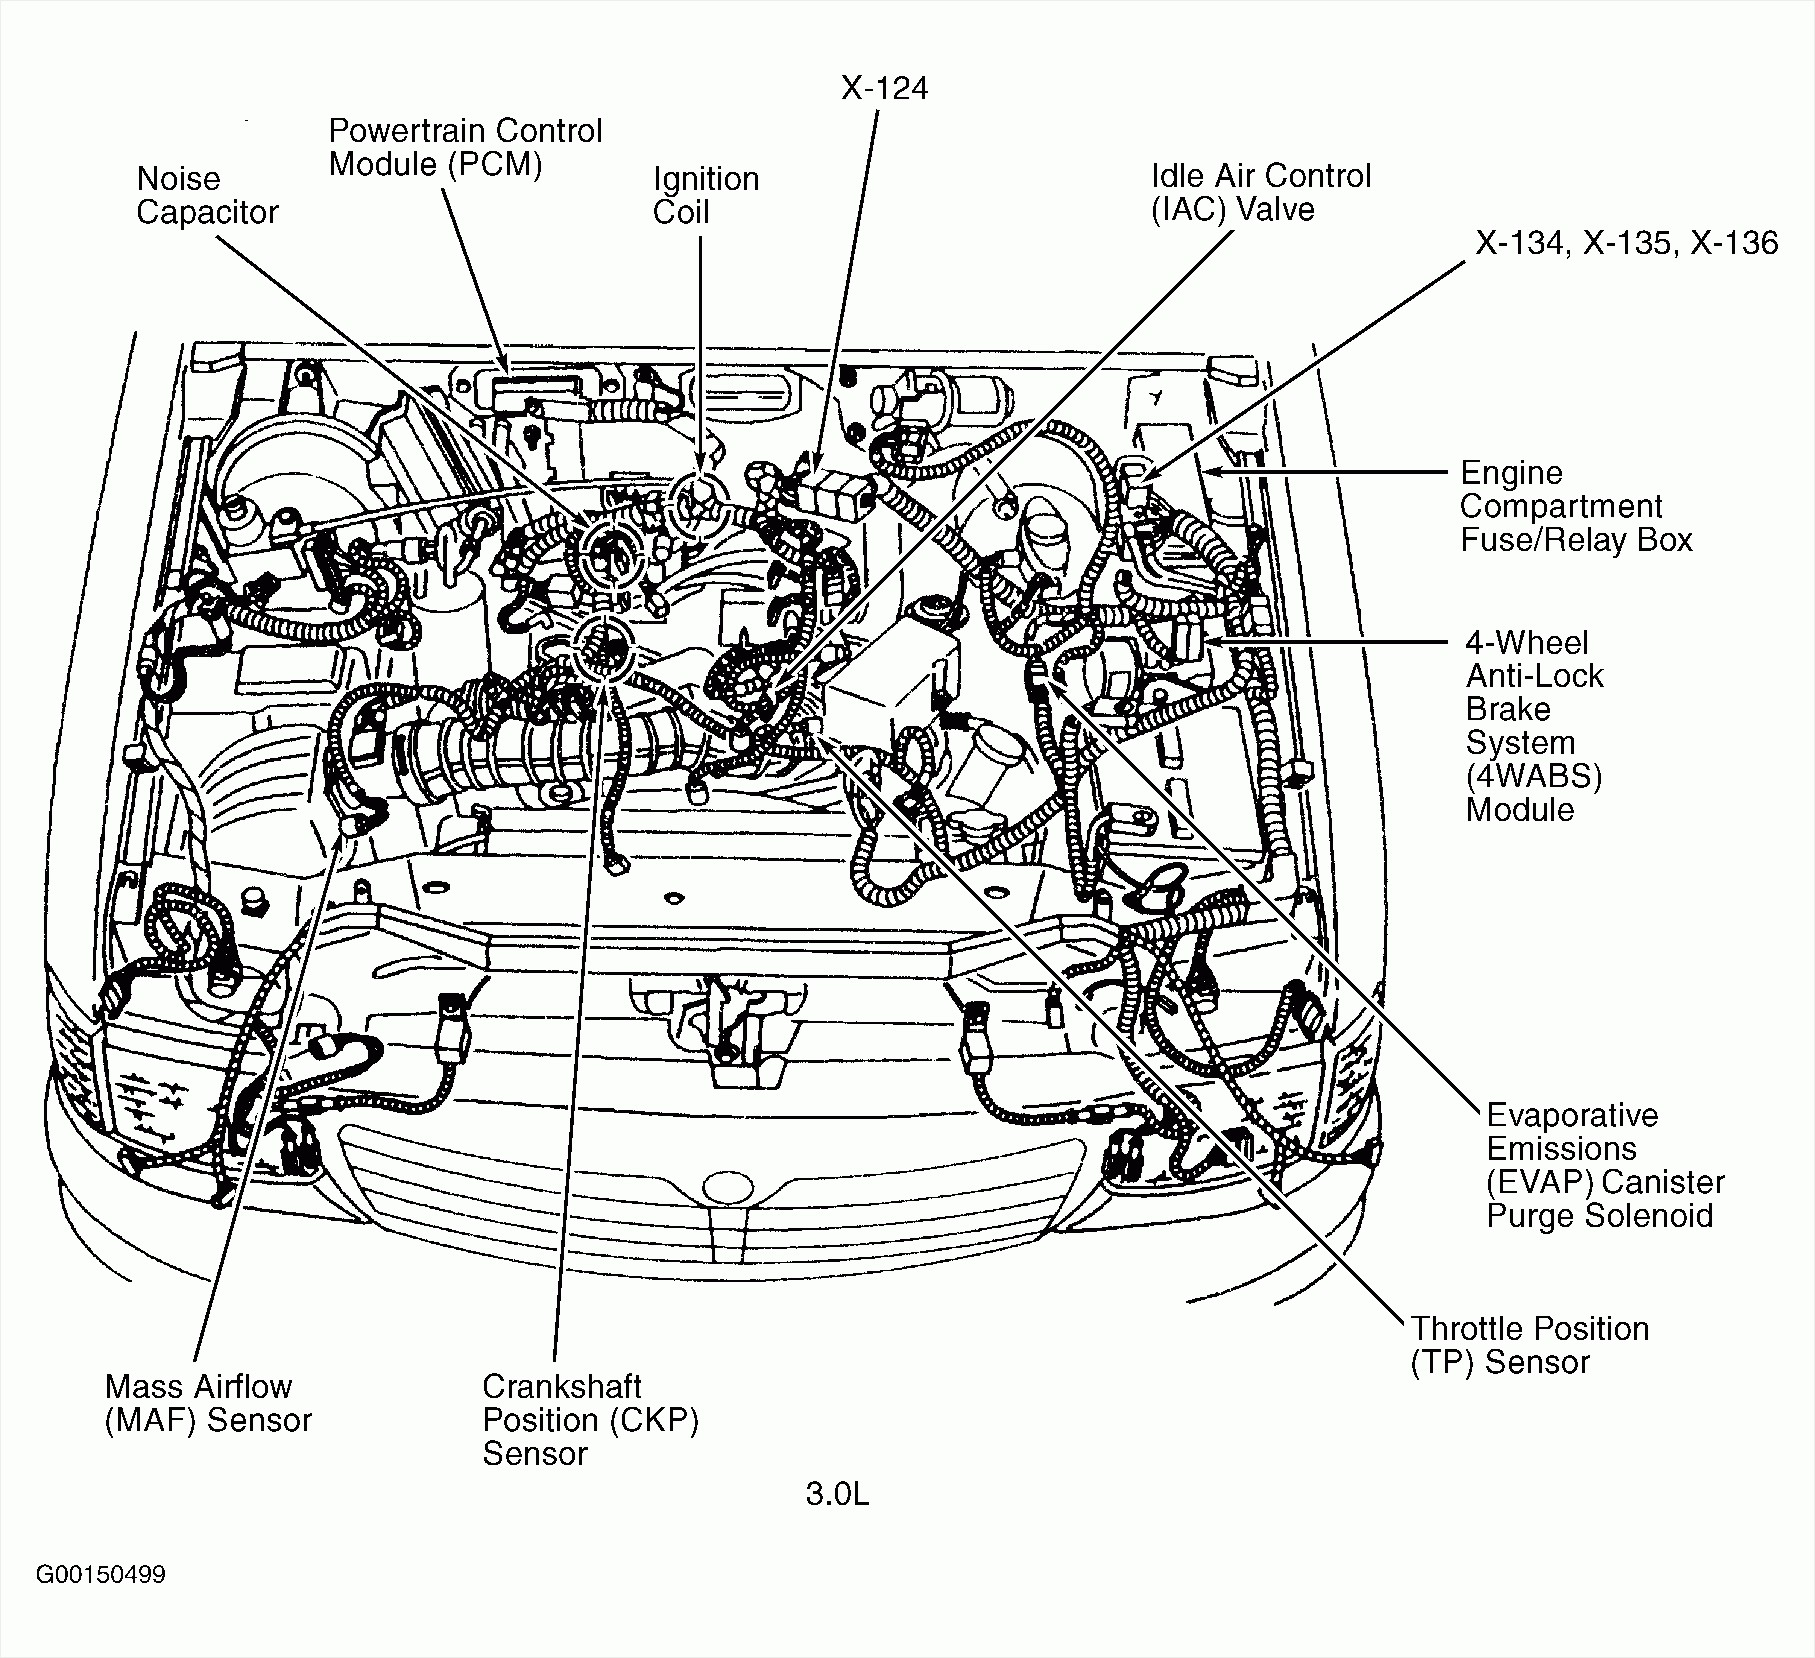 1 8t engine diagram go wiring diagram vw 1.8t engine diagram hoses vw jetta 1 8t engine diagram #3